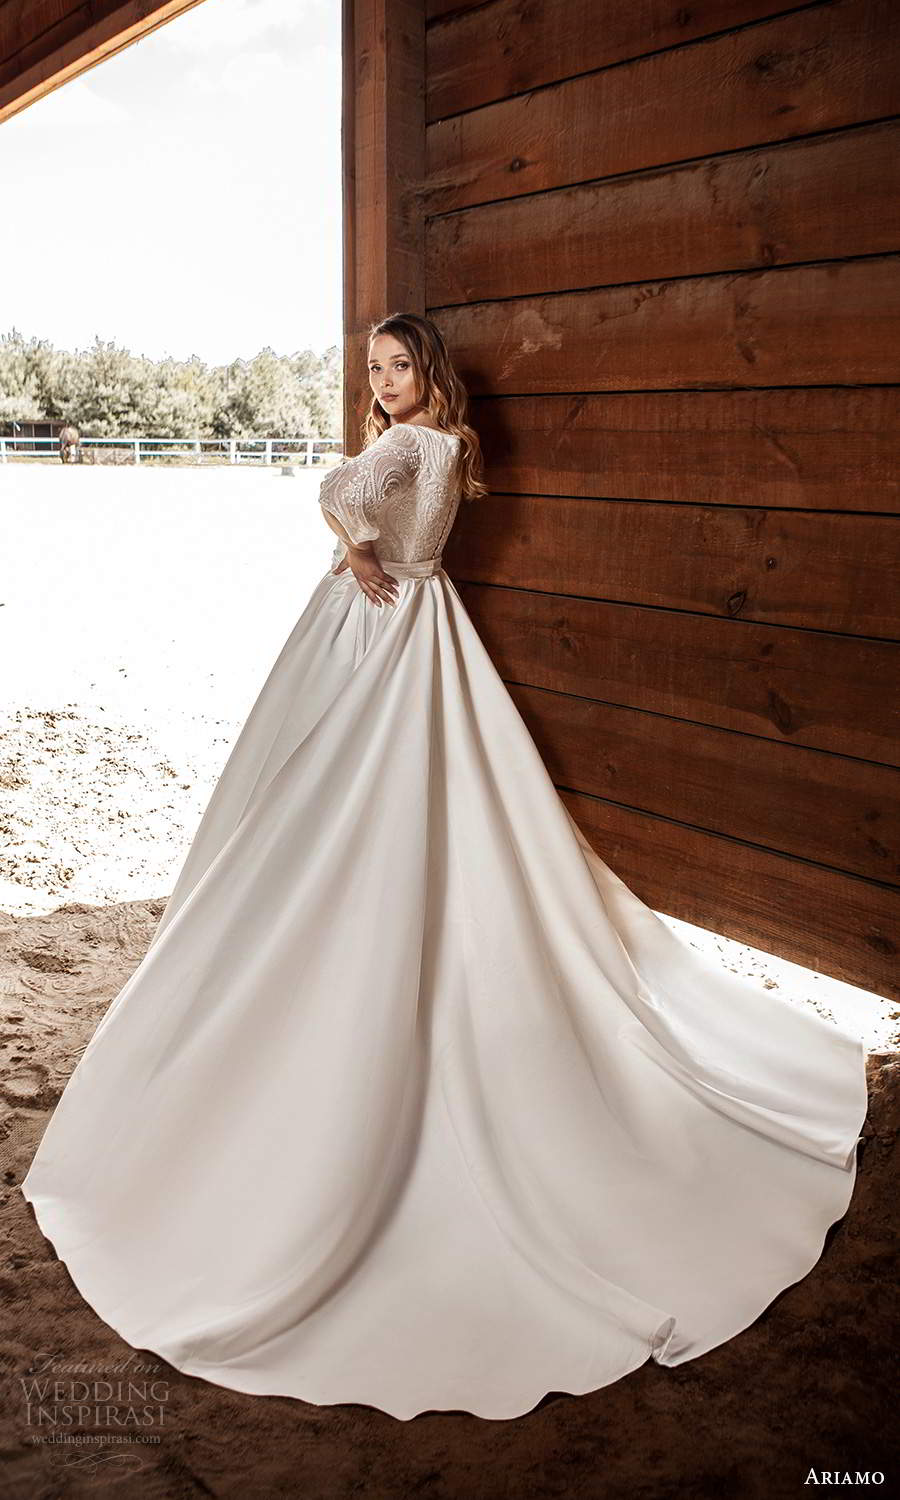 ariamo 2021 plus bridal half sleeves plunging v necklnie embellished bodice clean skirt a line ball gown wedding dress chapel train (5) bv